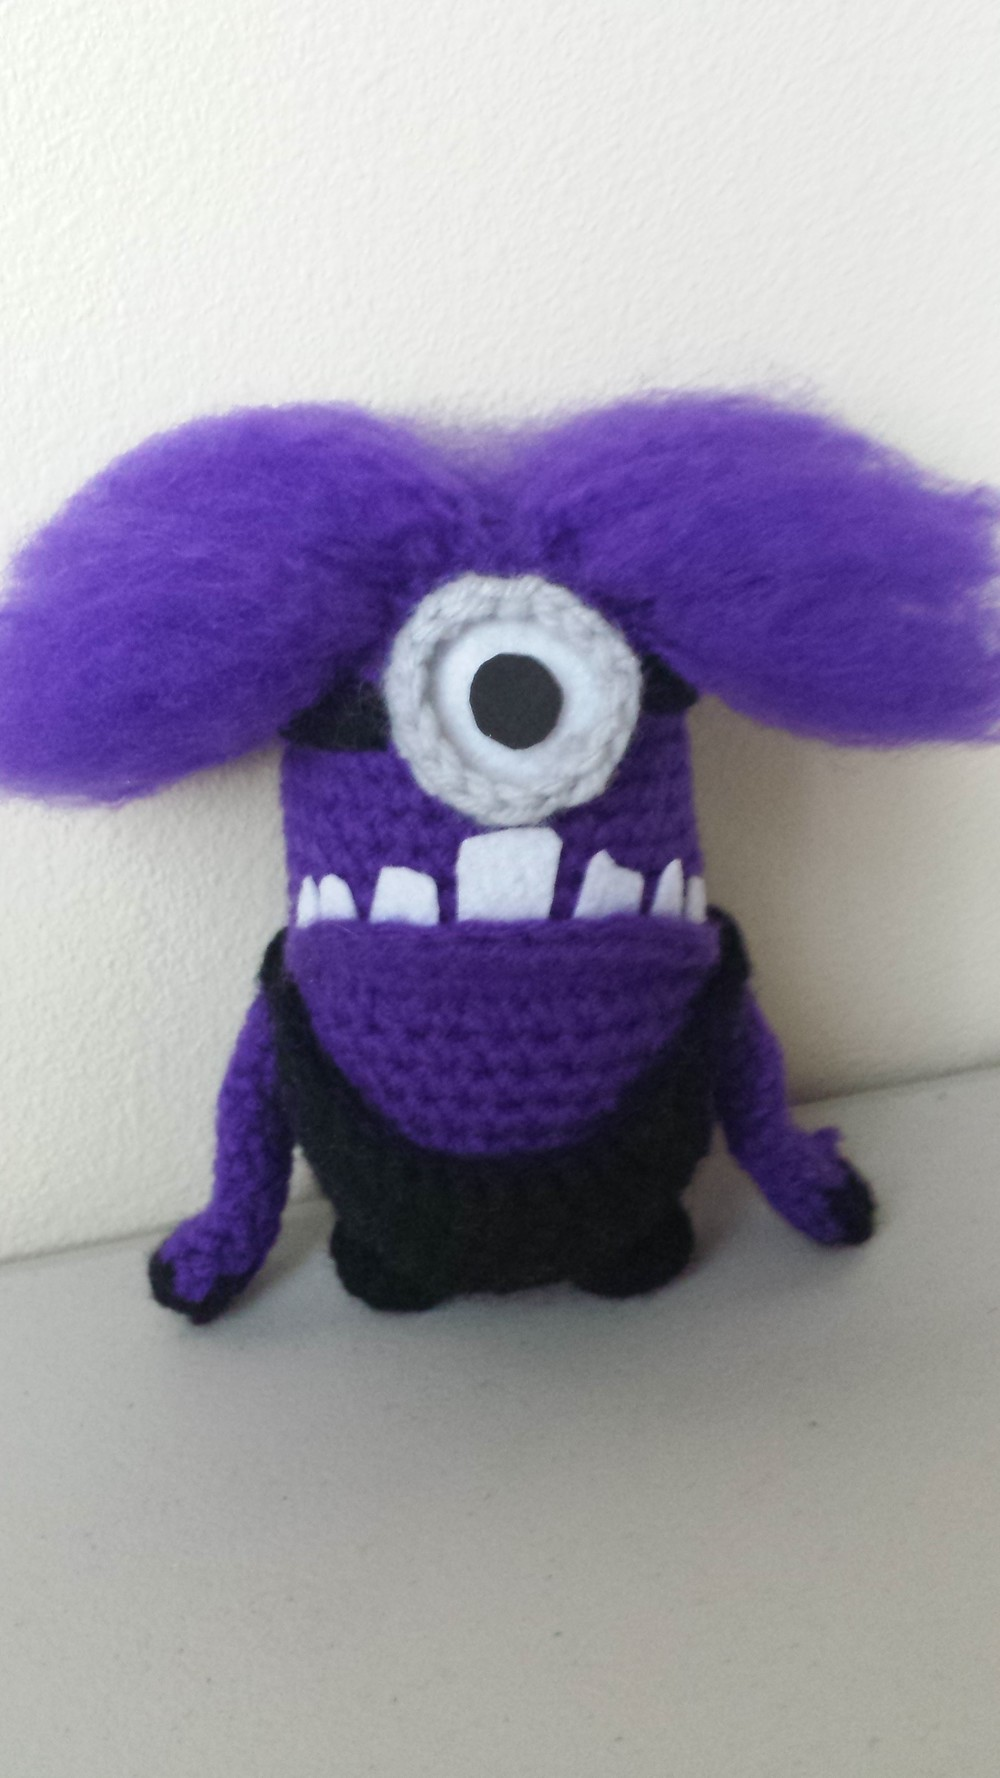 Despicable me 2 evil minion crochet hair tutorial lifted geek 20130629103111g bankloansurffo Image collections